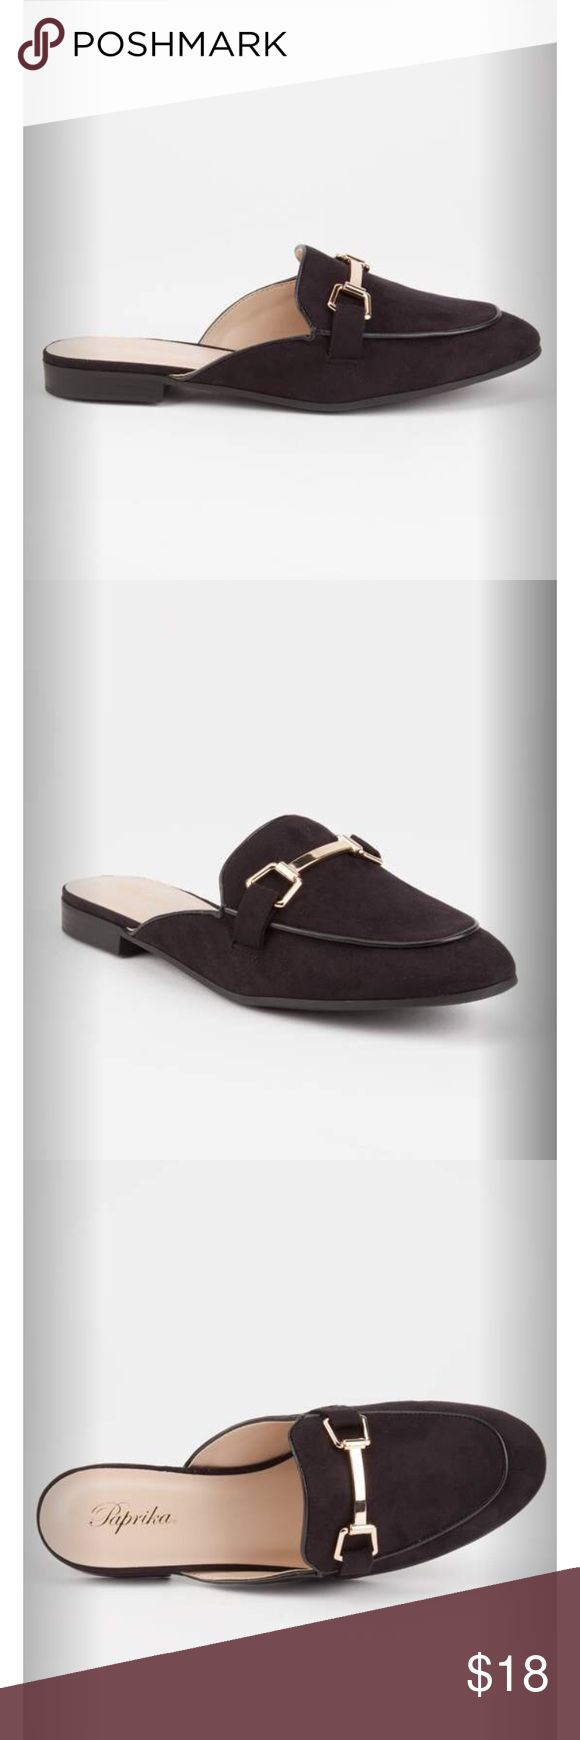 PAPRIKA Solid Womens Mule Loafers (Black) Super cute loafers! It's new with tags and box! True to size! Paprika Shoes Mules & Clogs